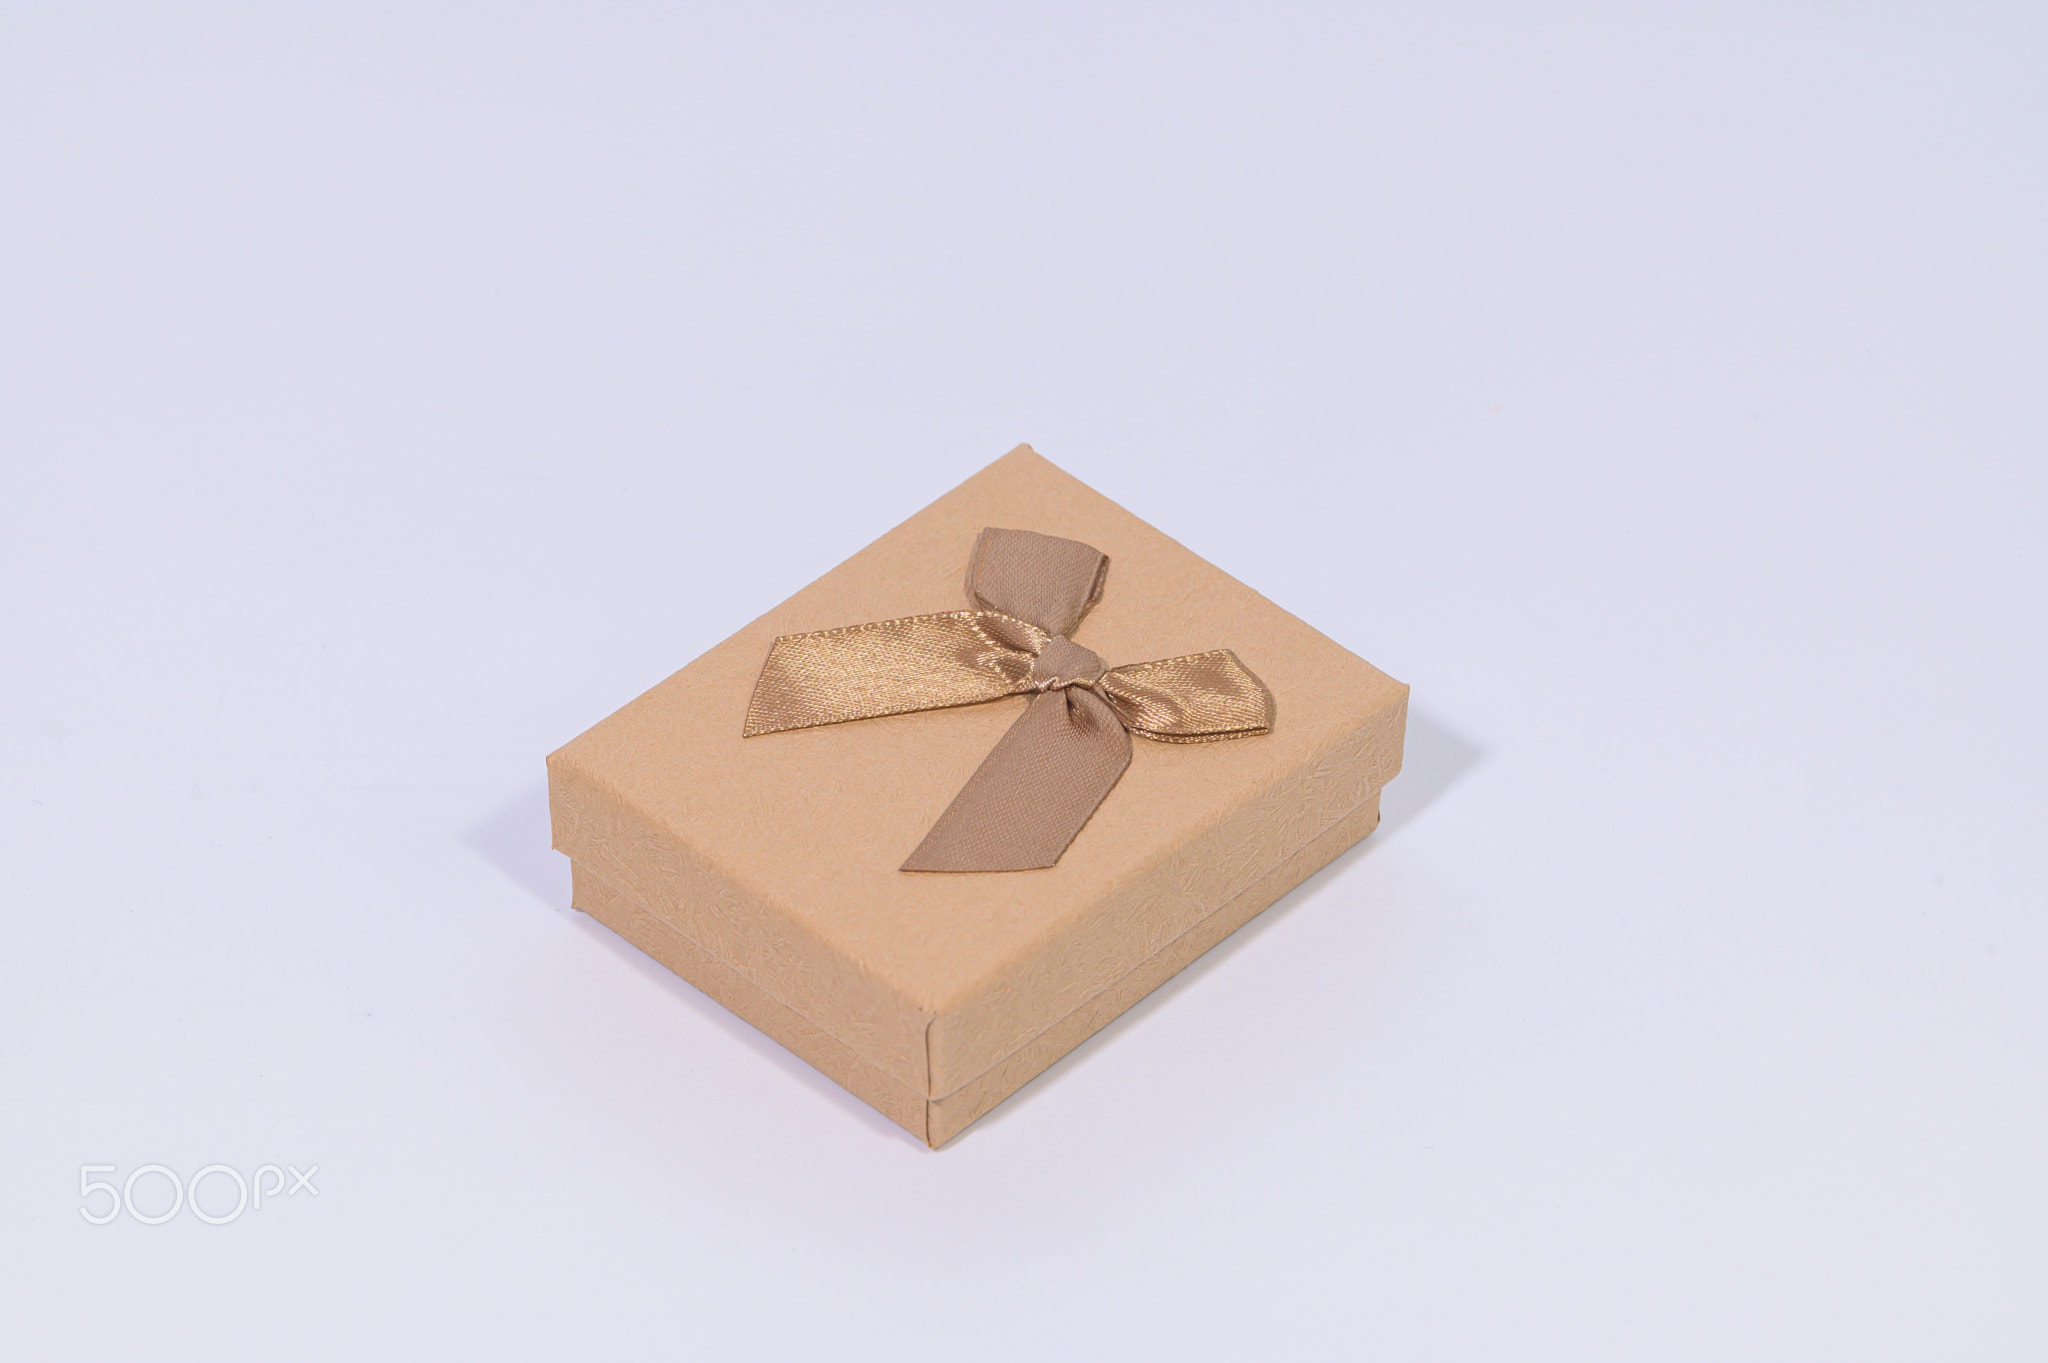 A brown gift box on a white background